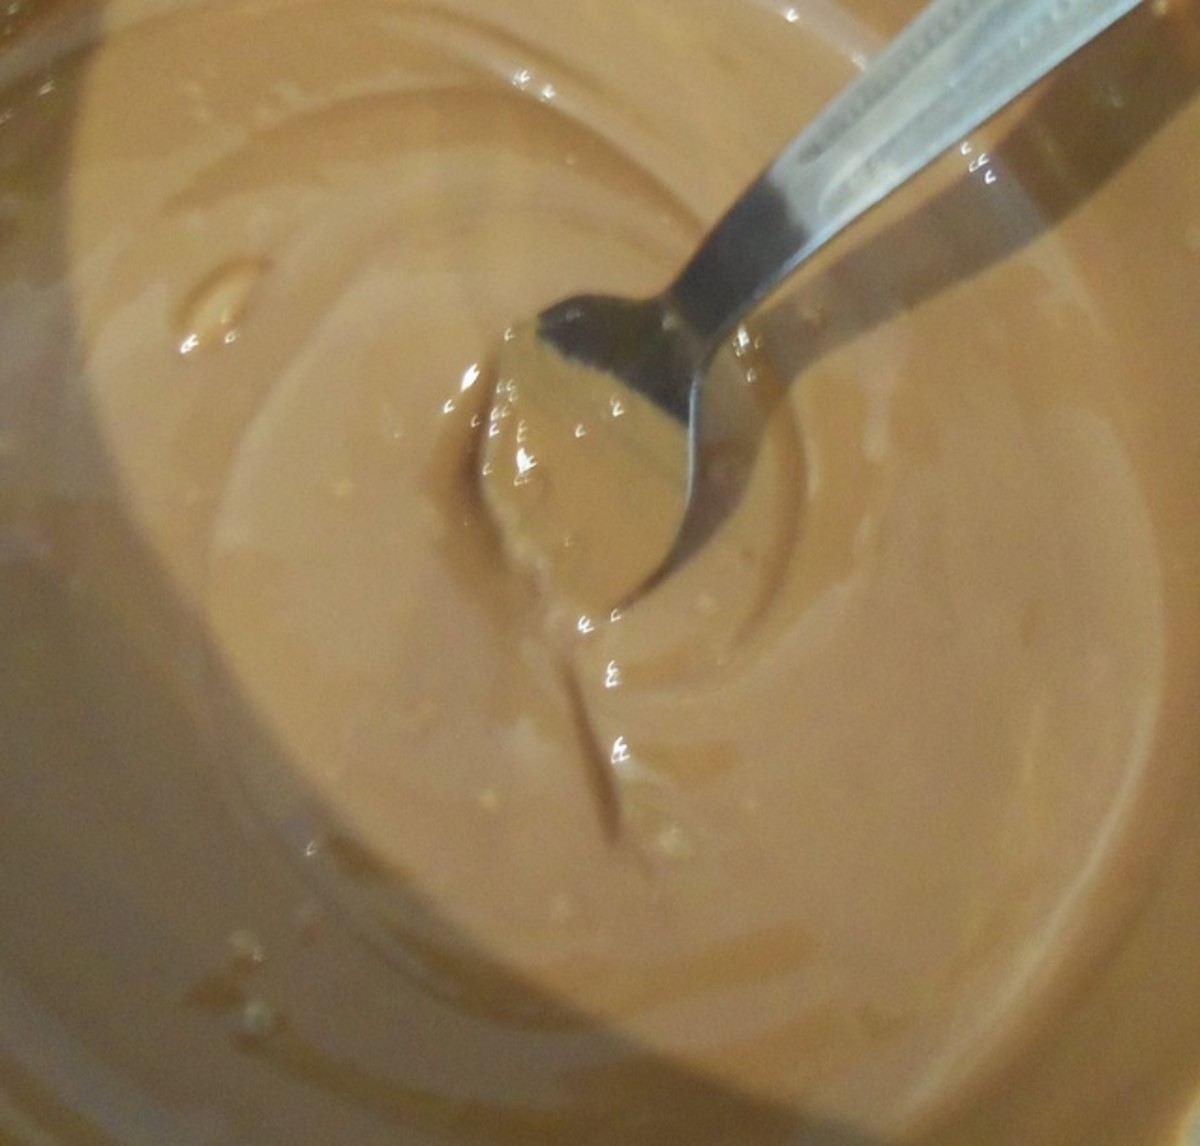 Melt the chocolate using a double boiler or in the microwave.